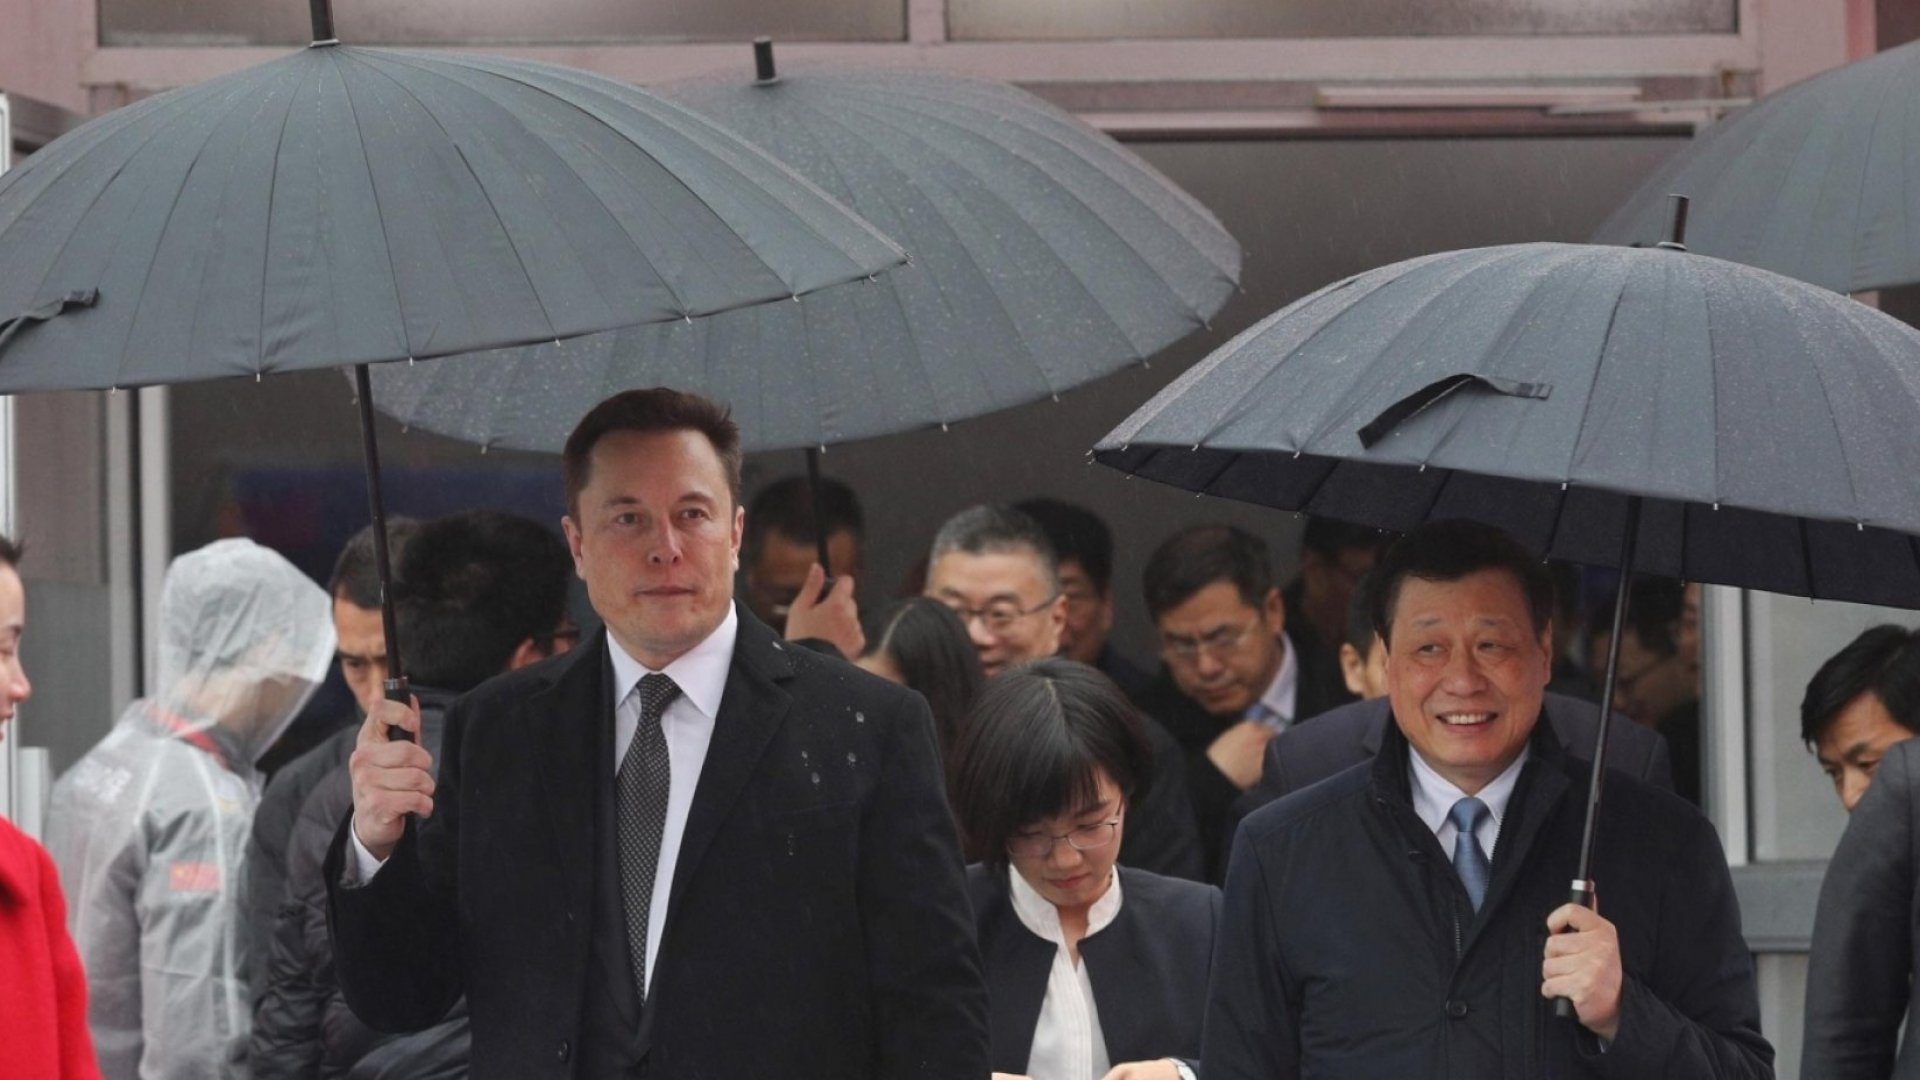 Elon Musk at the Tesla Shanghai Gigafactory.